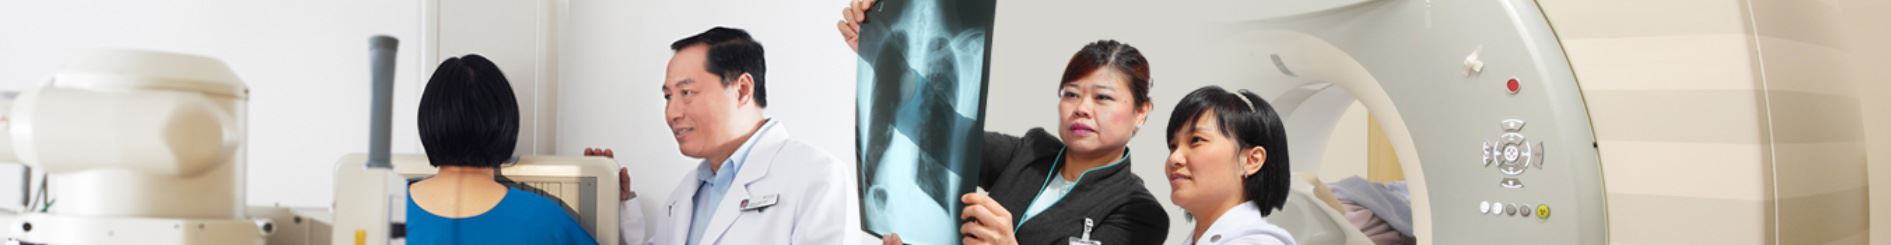 Singapore Society of Radiographers - Courses In Radiography